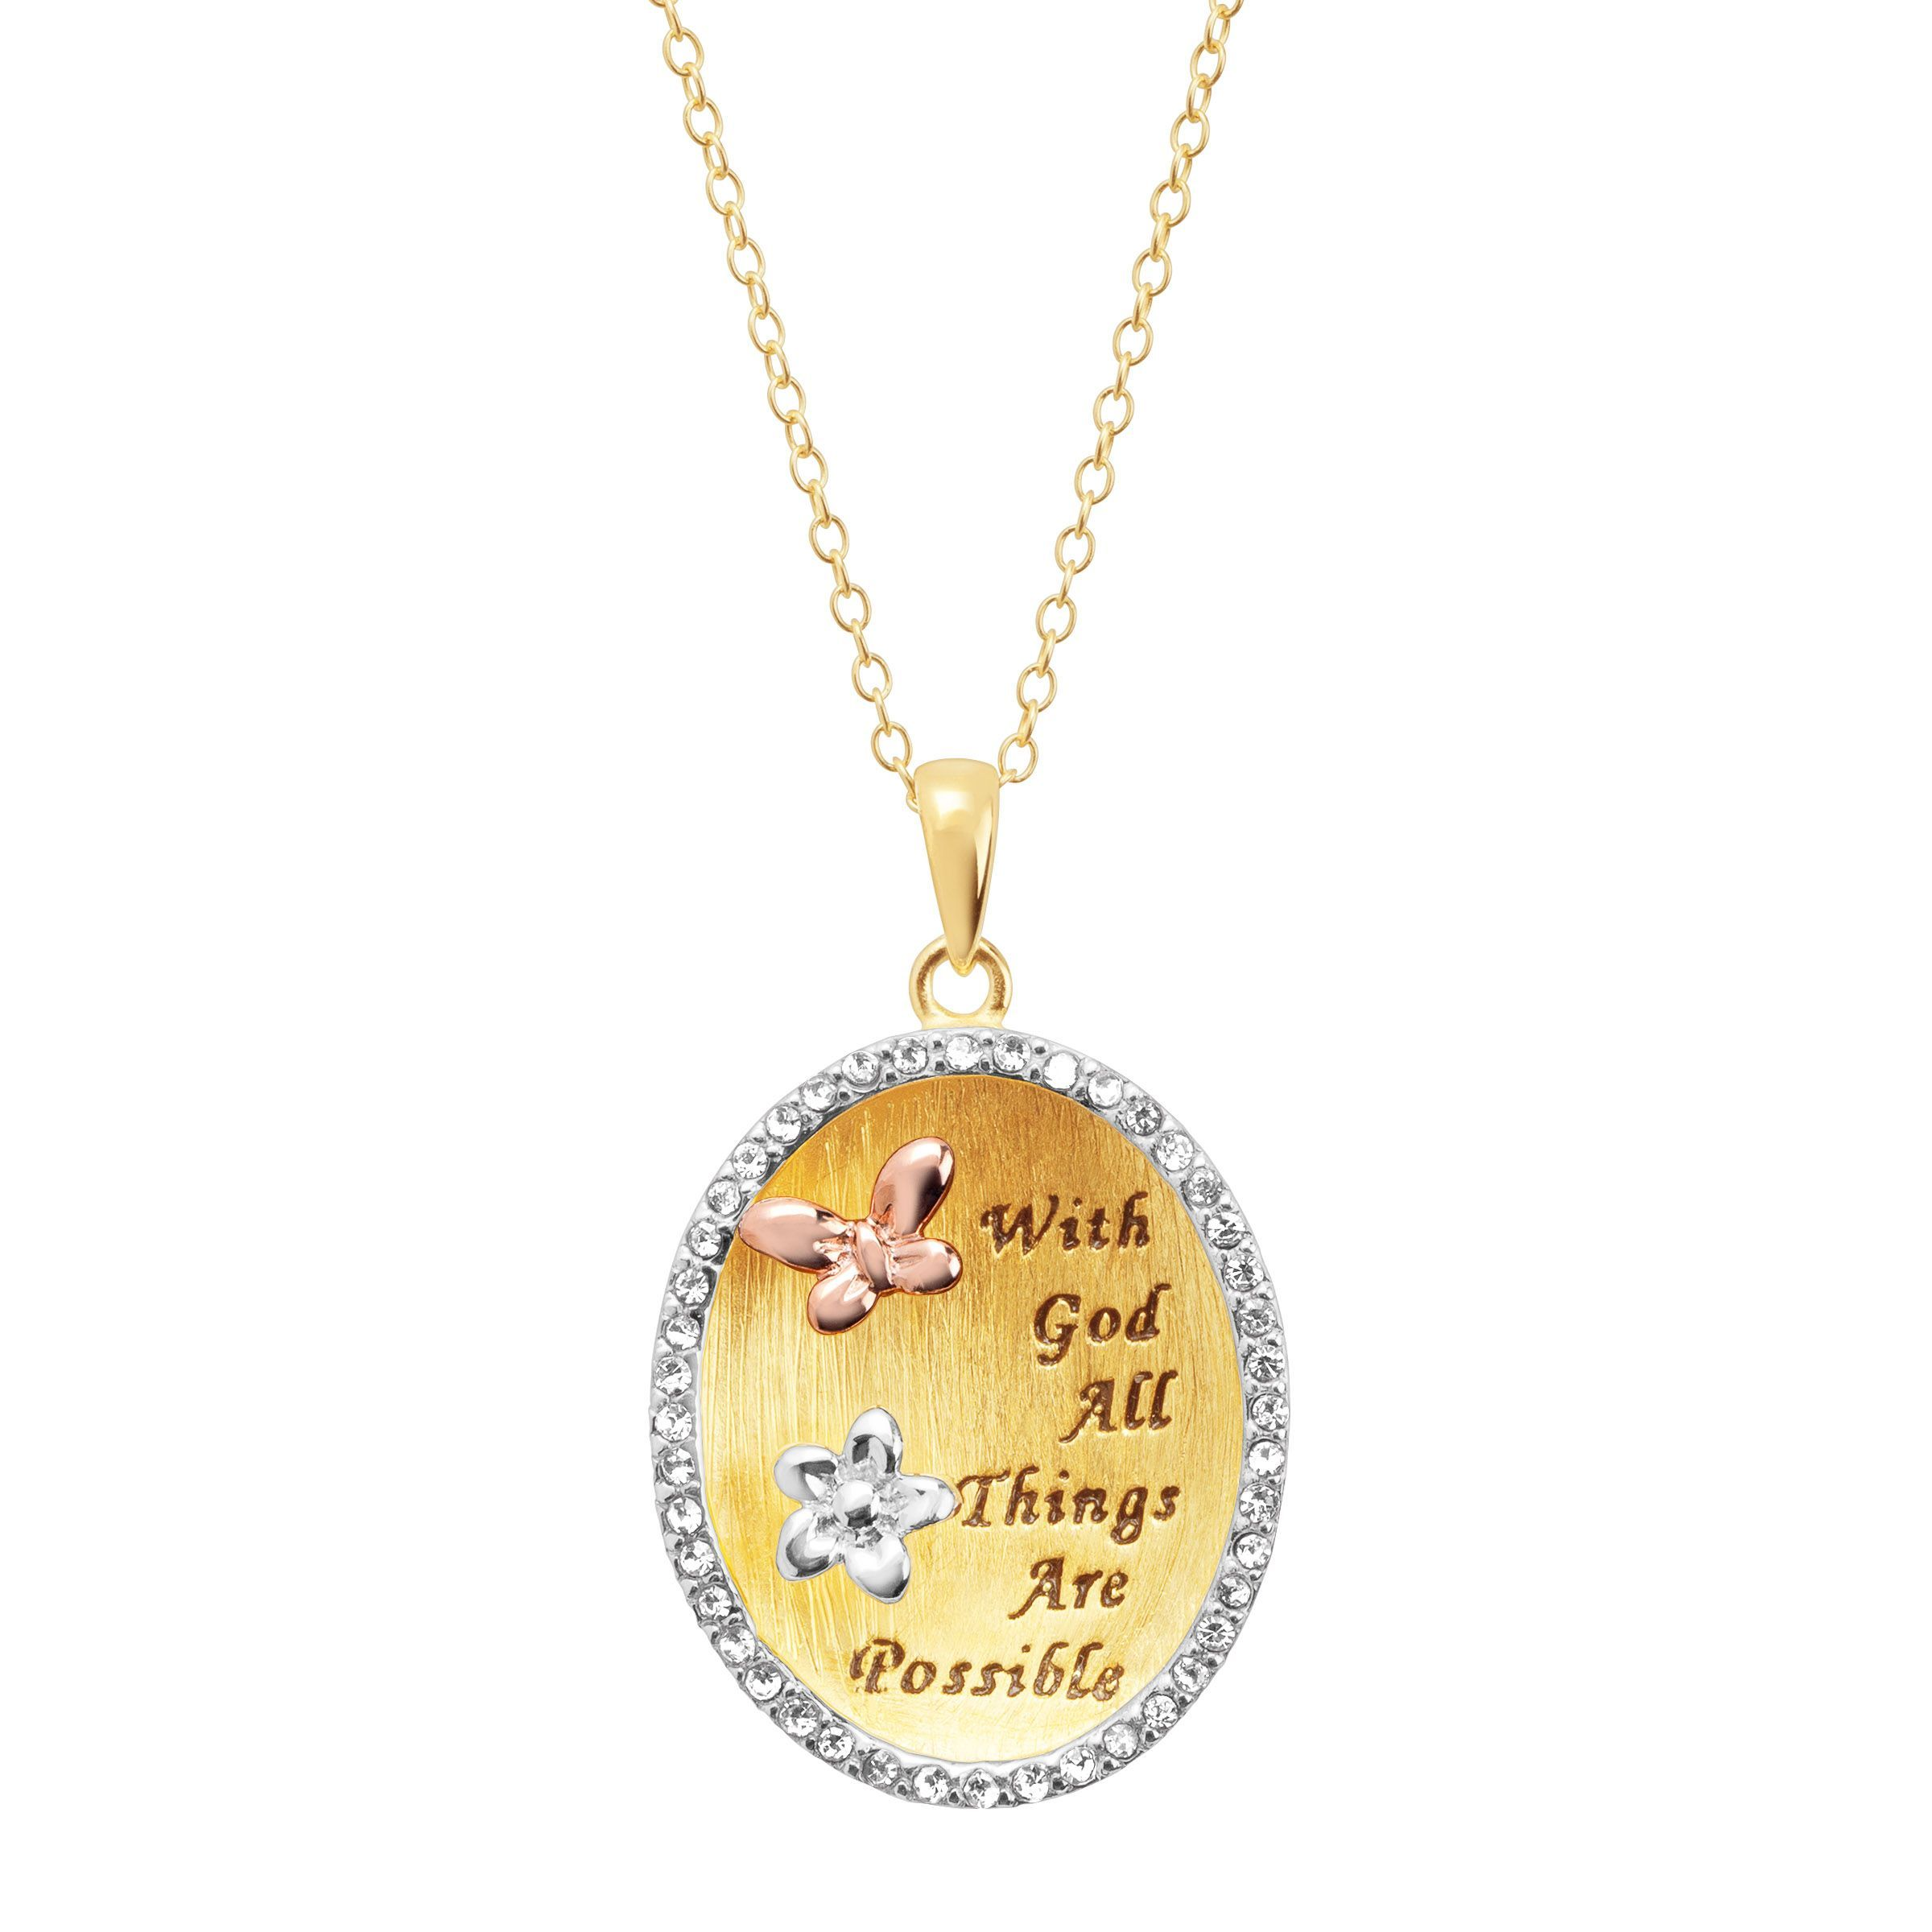 a496eb5bc96a Engraved Oval Pendant with Swarovski Crystals in 18K Gold-Plated Sterling  Silver